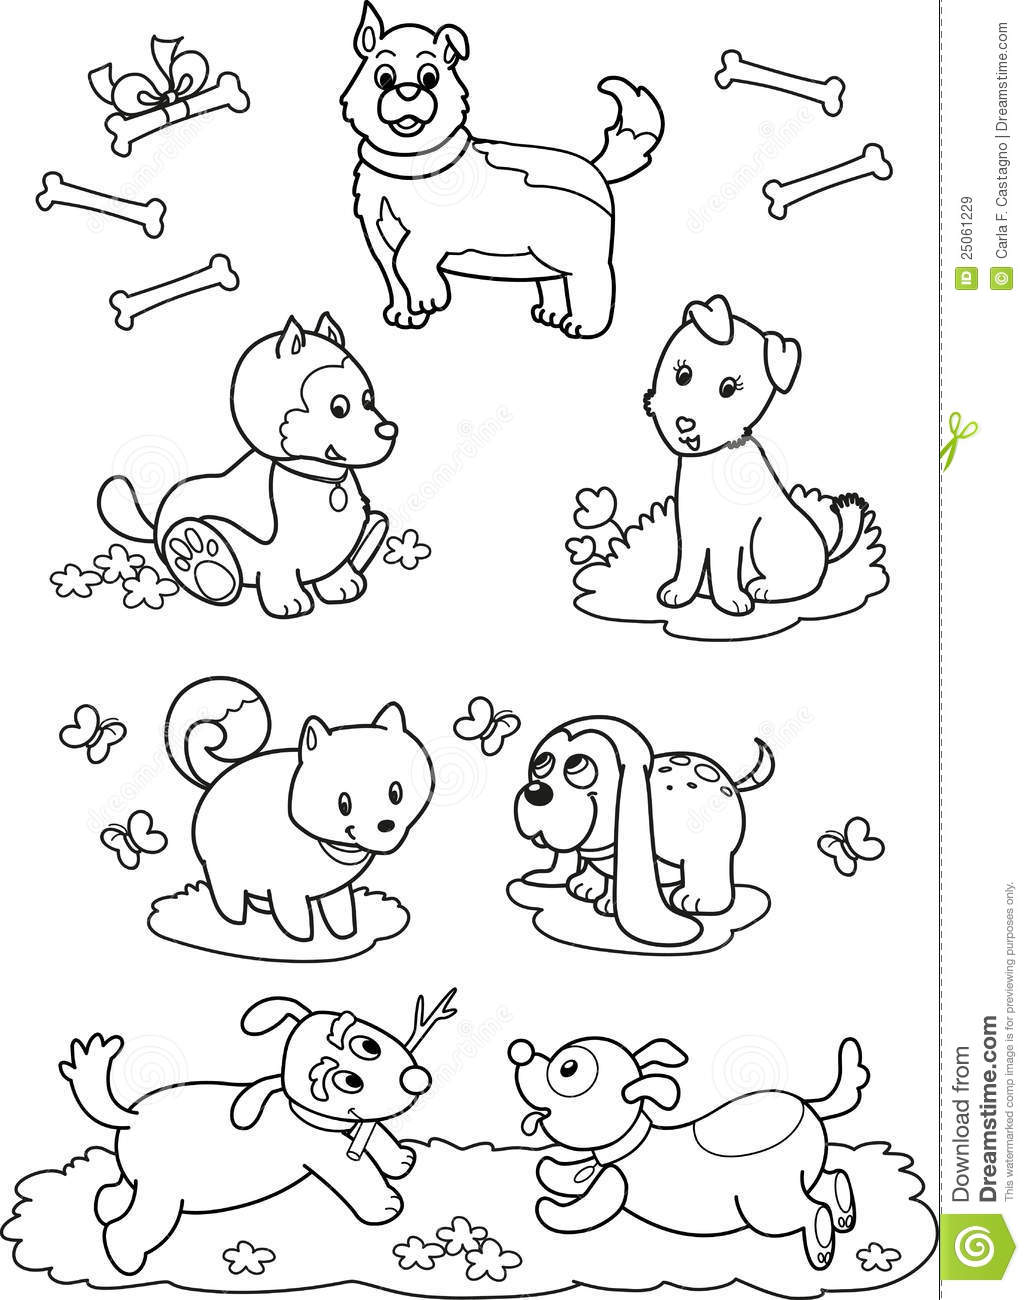 animal coloring pages for kids dogs jokes | Cute Cartoon Dogs: Coloring Page Stock Vector ...